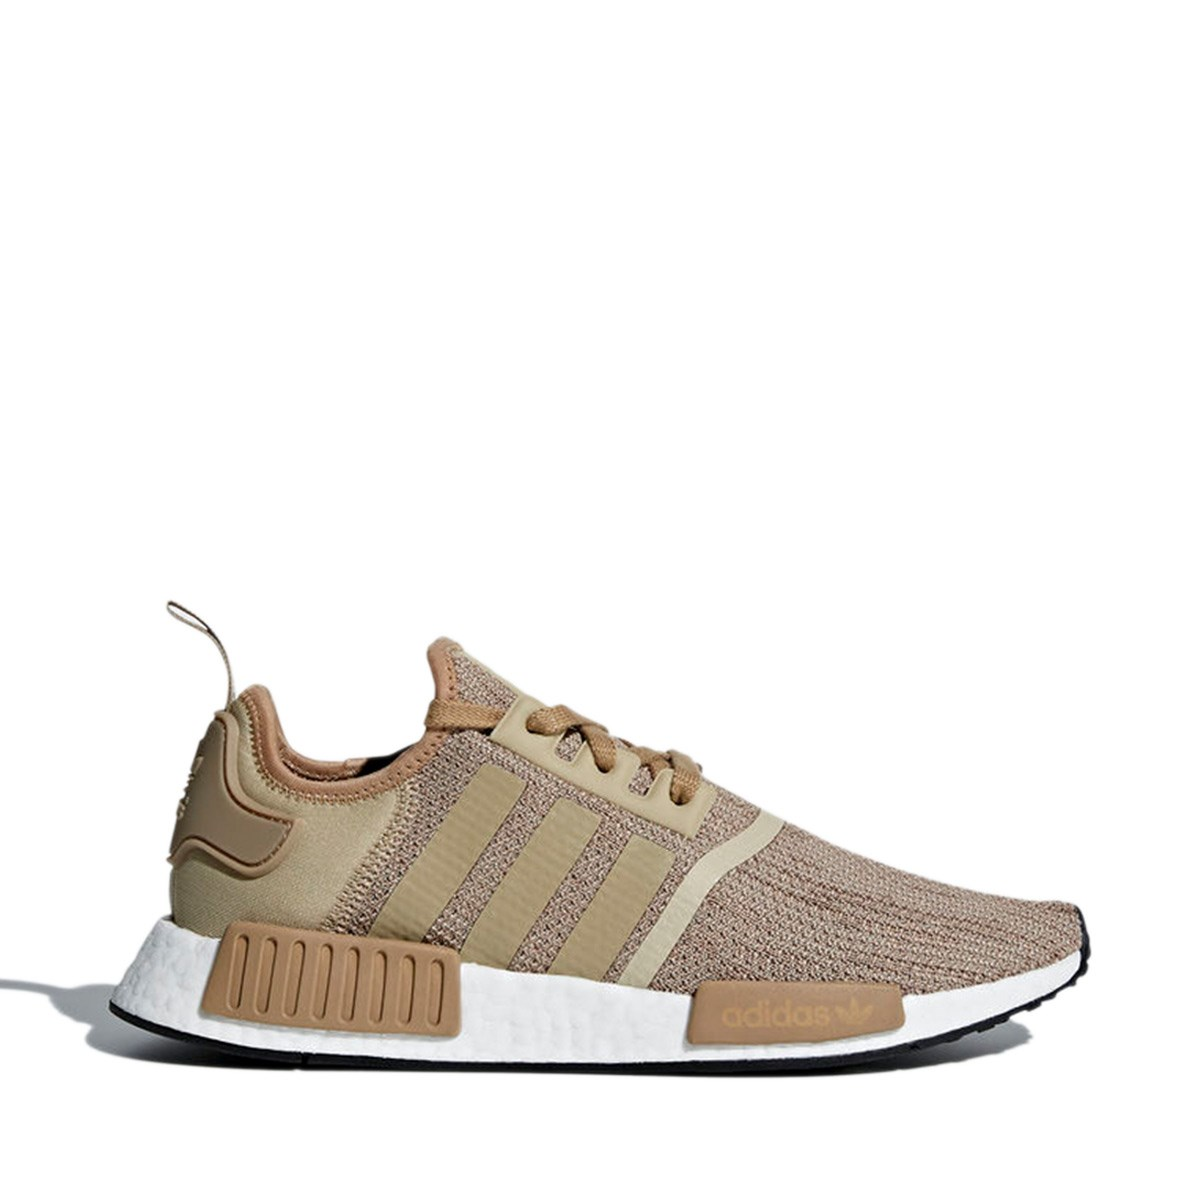 Men's NMD R1 Raw Gold Sneaker